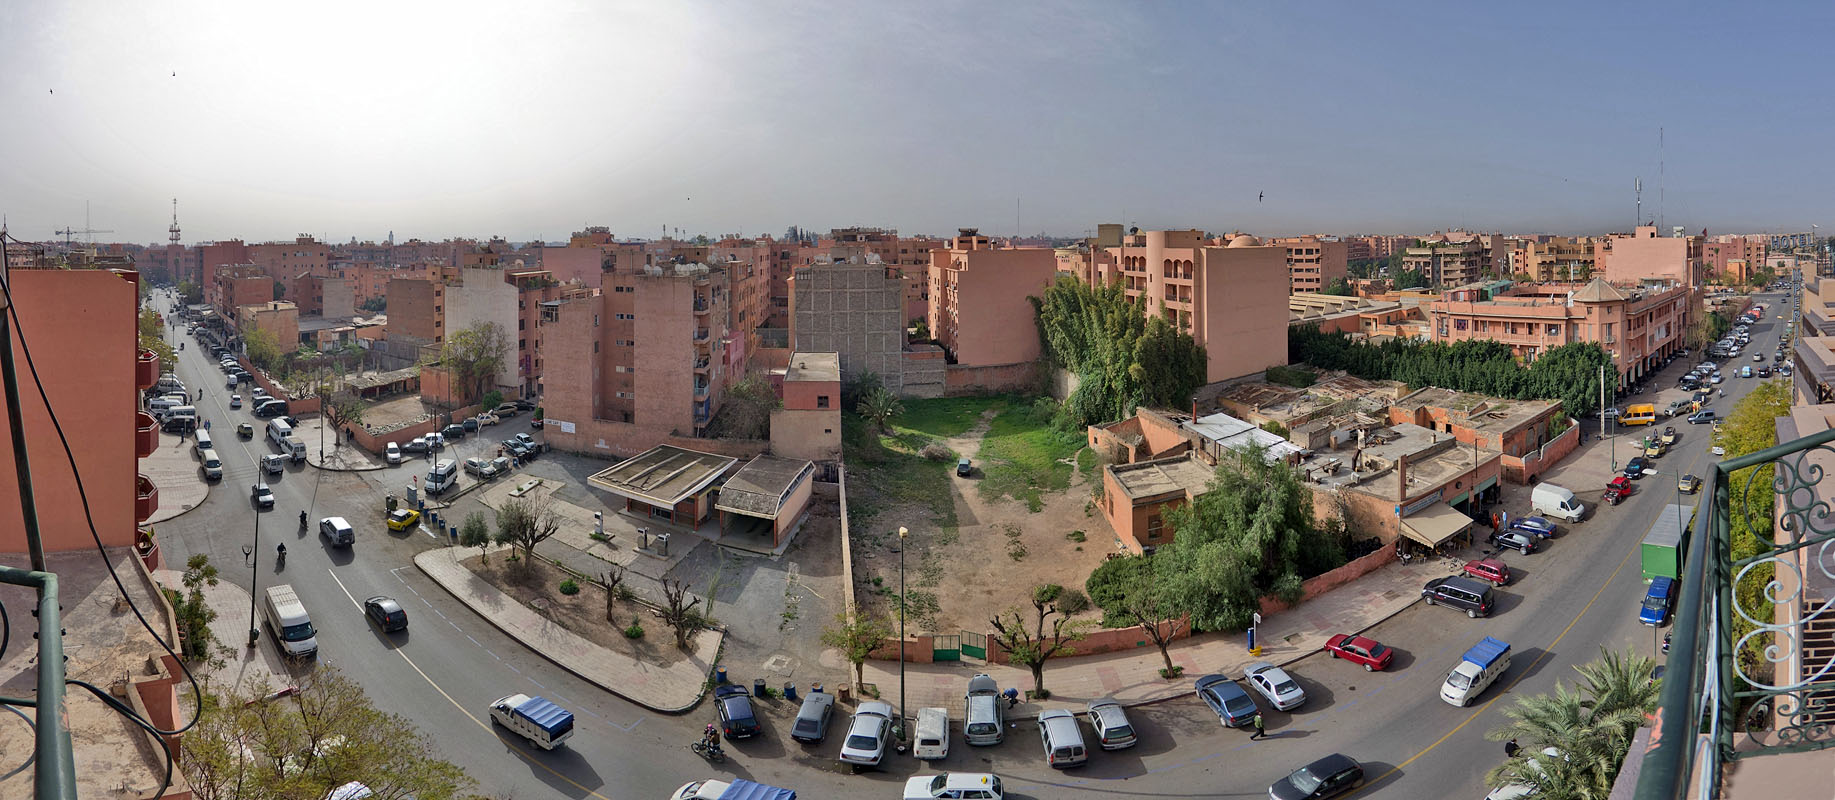 Street in Marrakech - view from a hotel roof